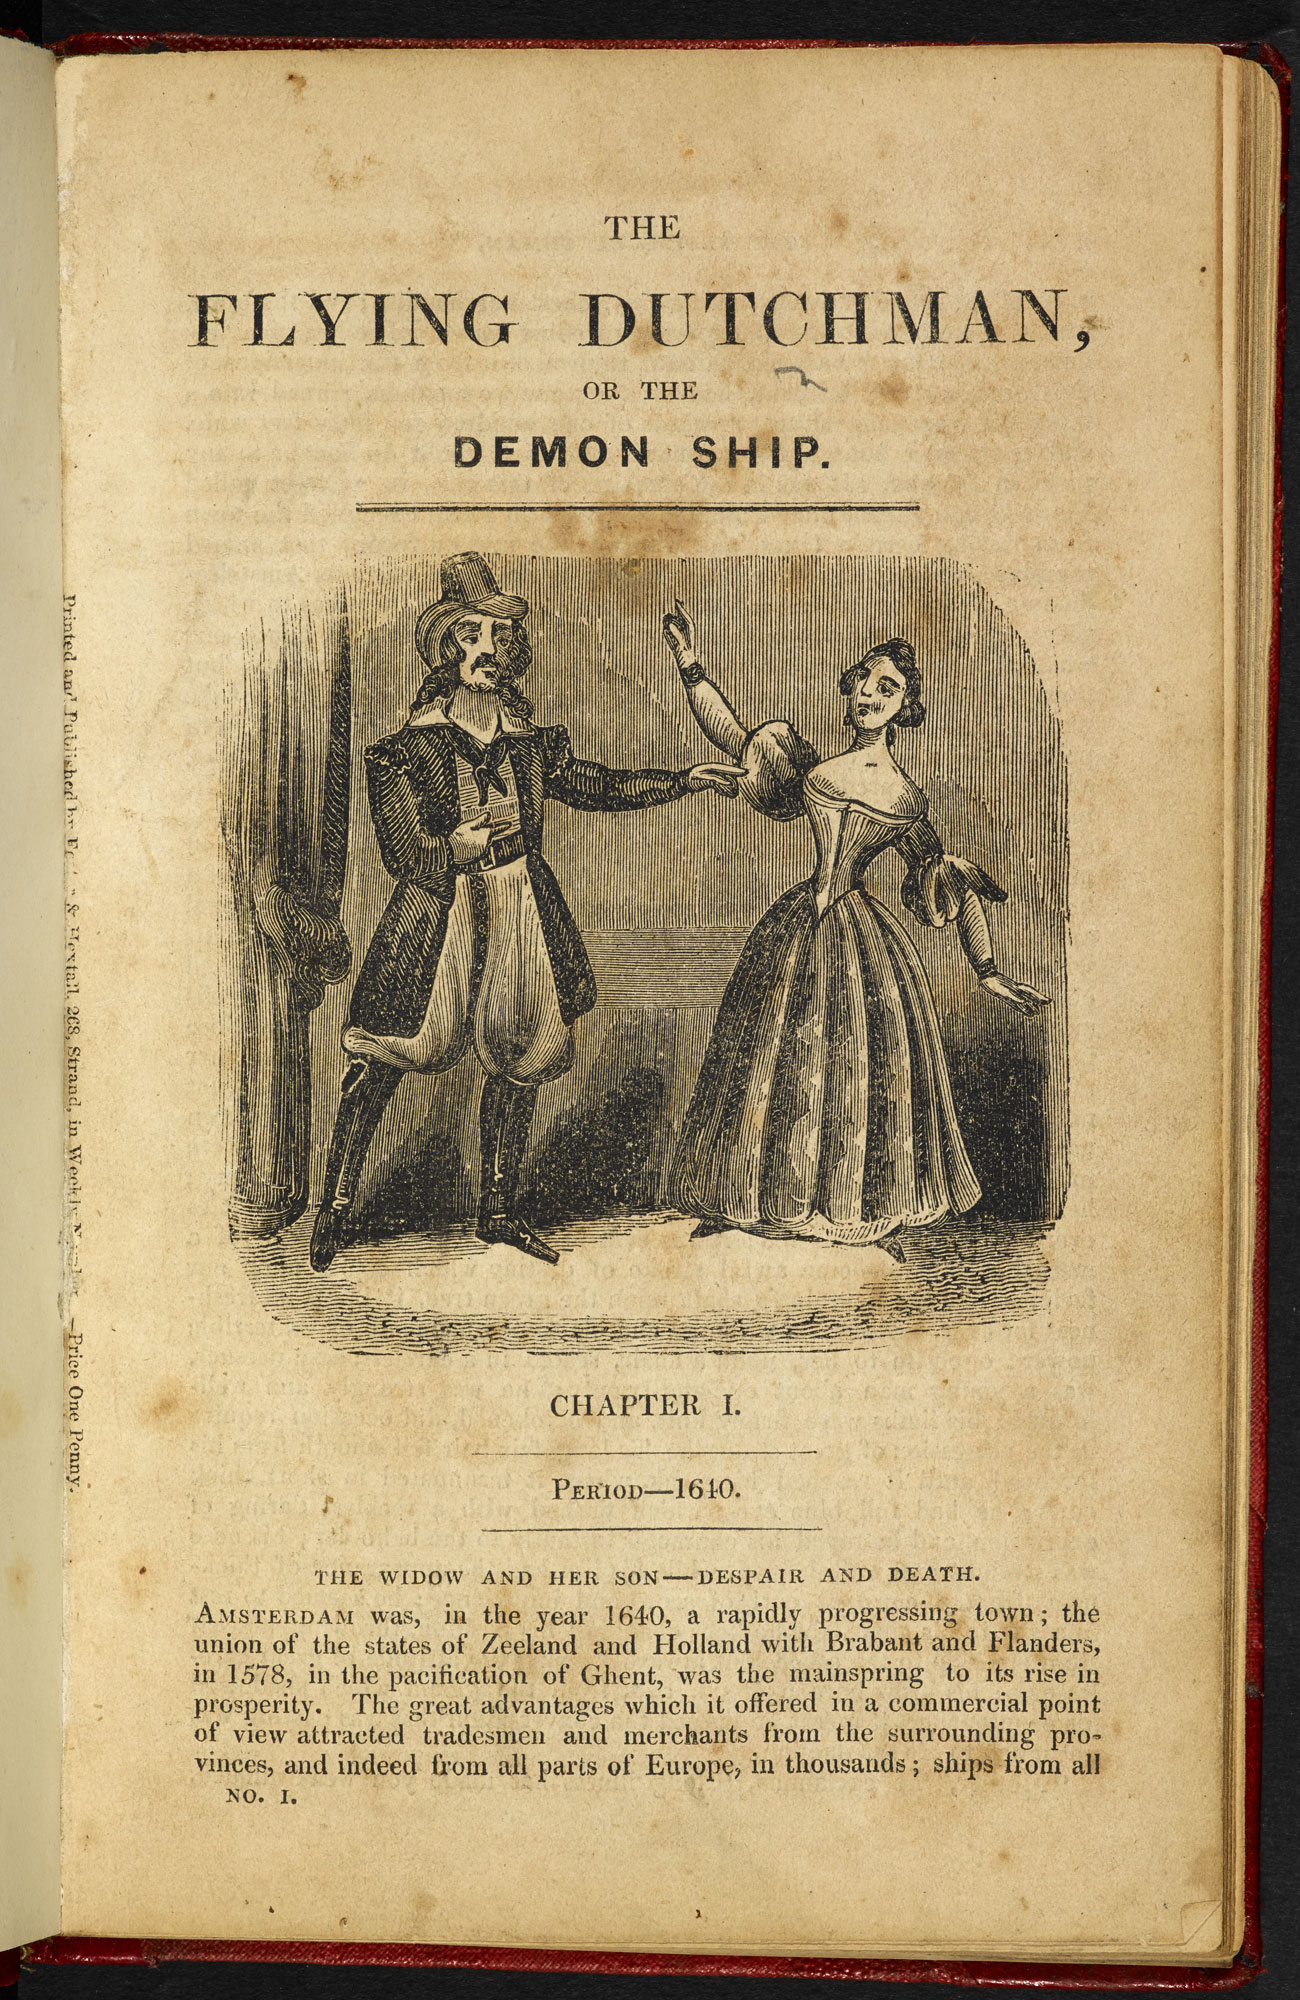 Penny dreadful, The Flying Dutchman [page: [1]]